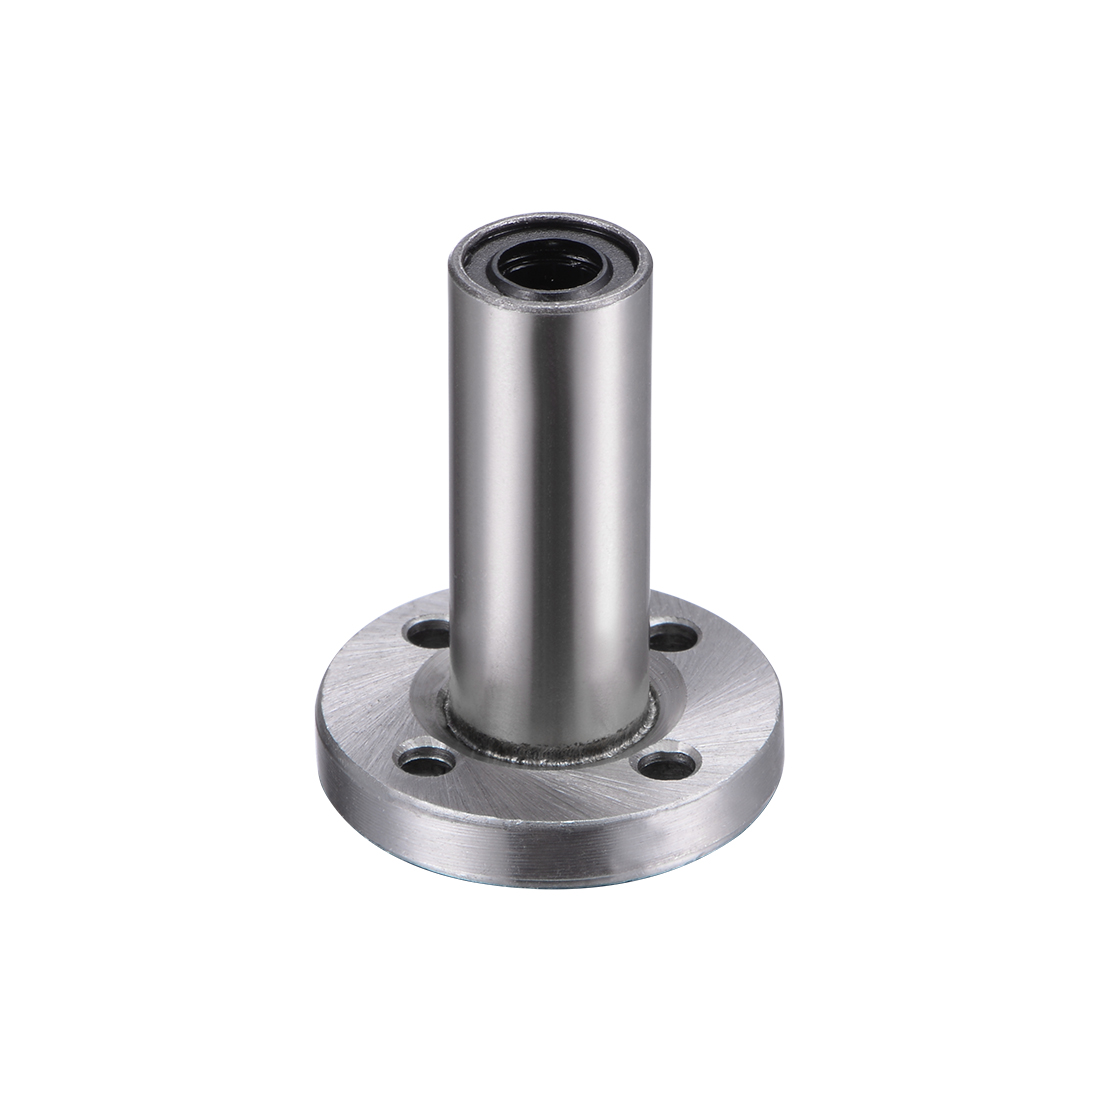 6mm Linear Ball Bearings Round Flange LMF6LUU 6mm Bore 12mm OD 35mm Length